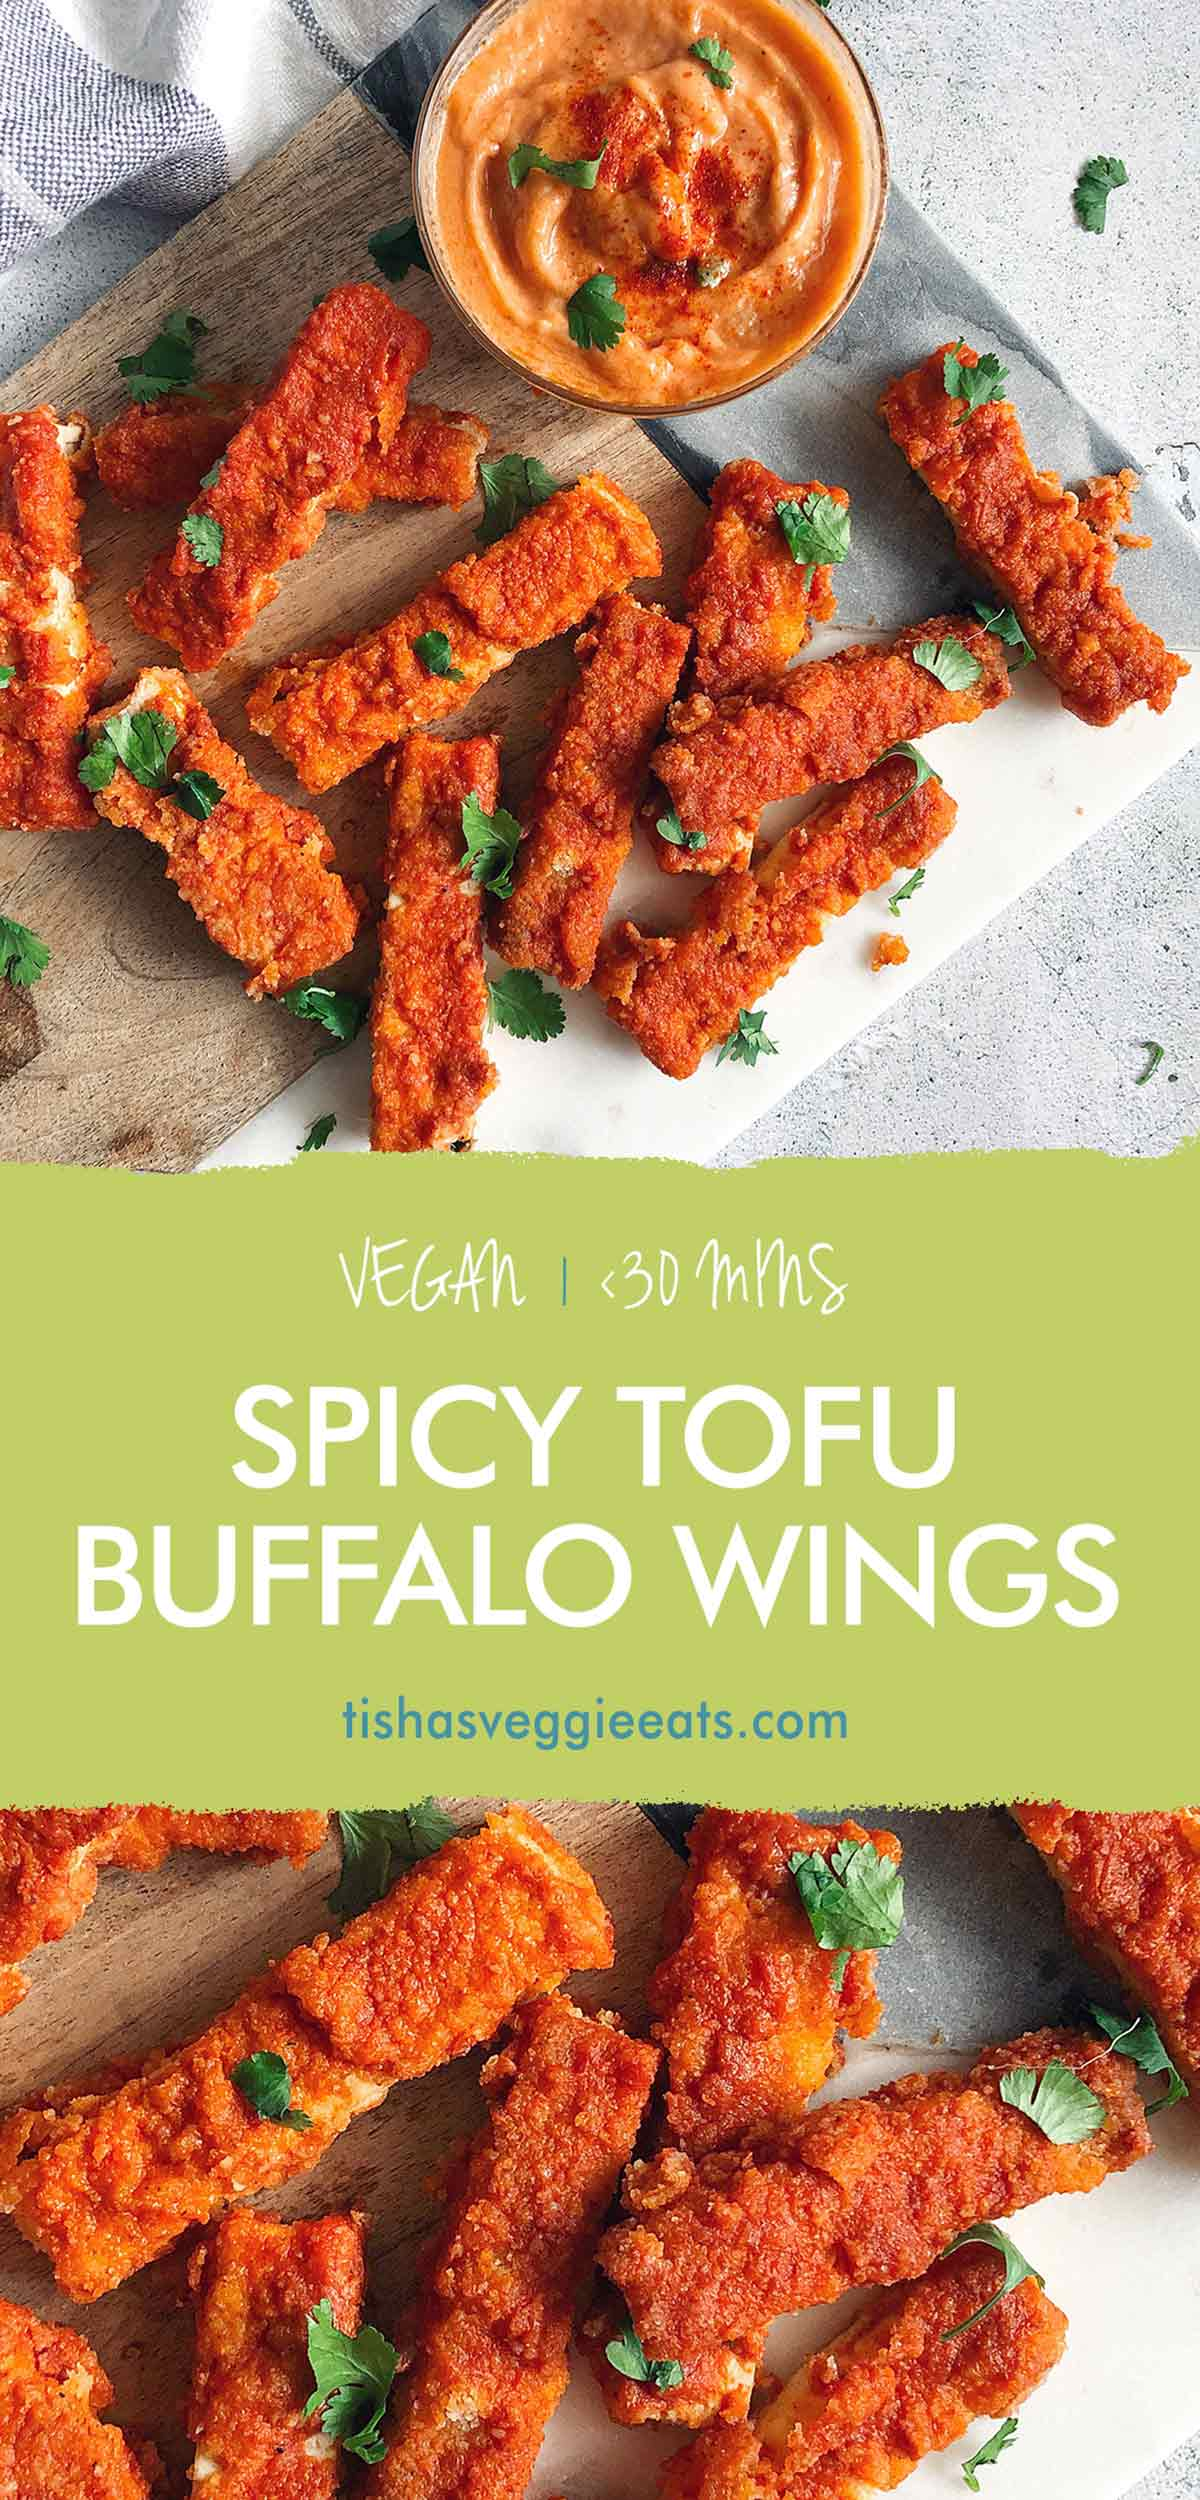 spicy tofu buffalo wings on cutting board with spicy mayo dipping sauce pinterest image